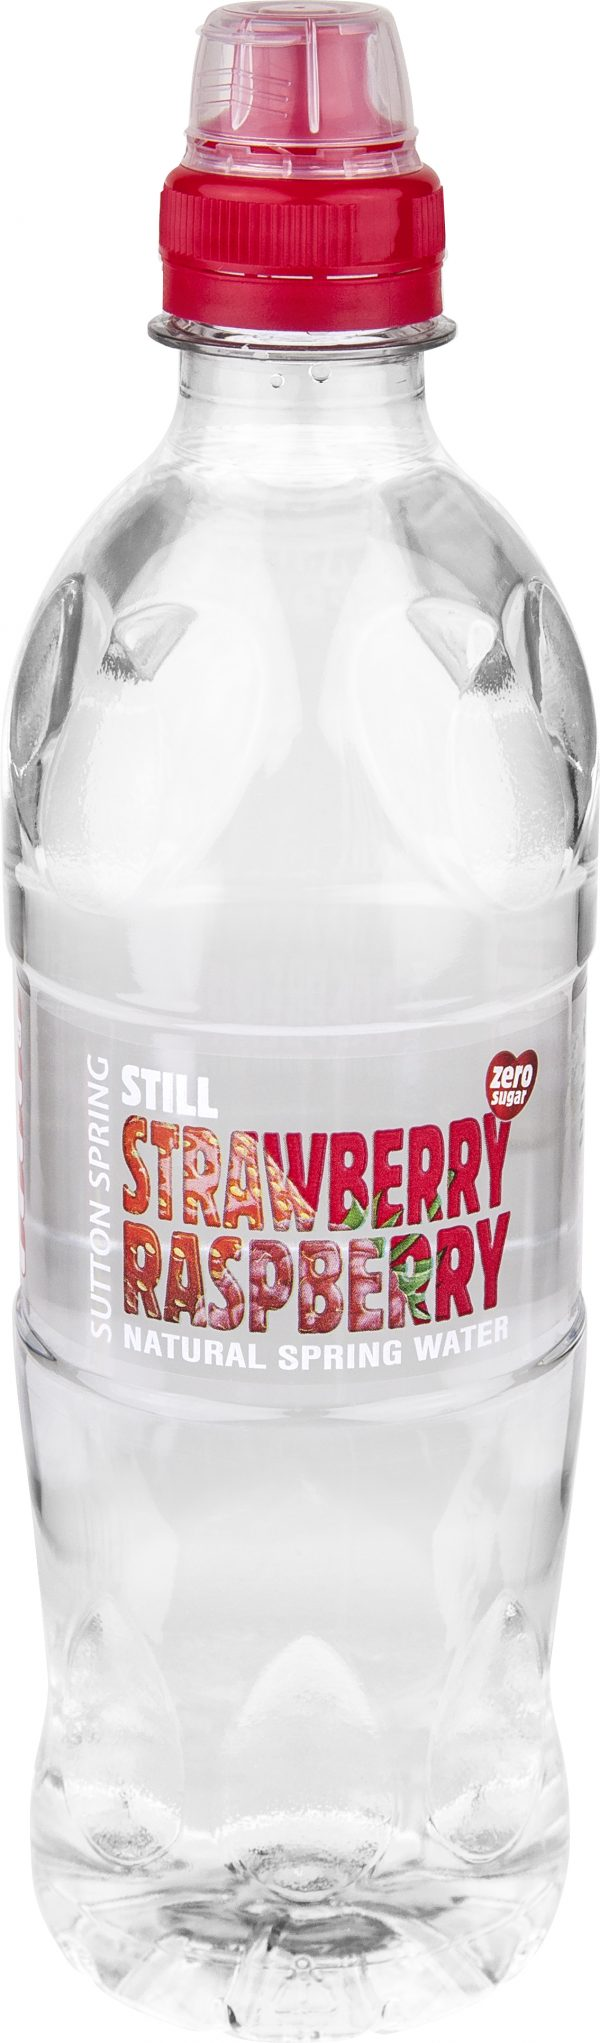 Thirsty Clear Stawberry & Raspberry